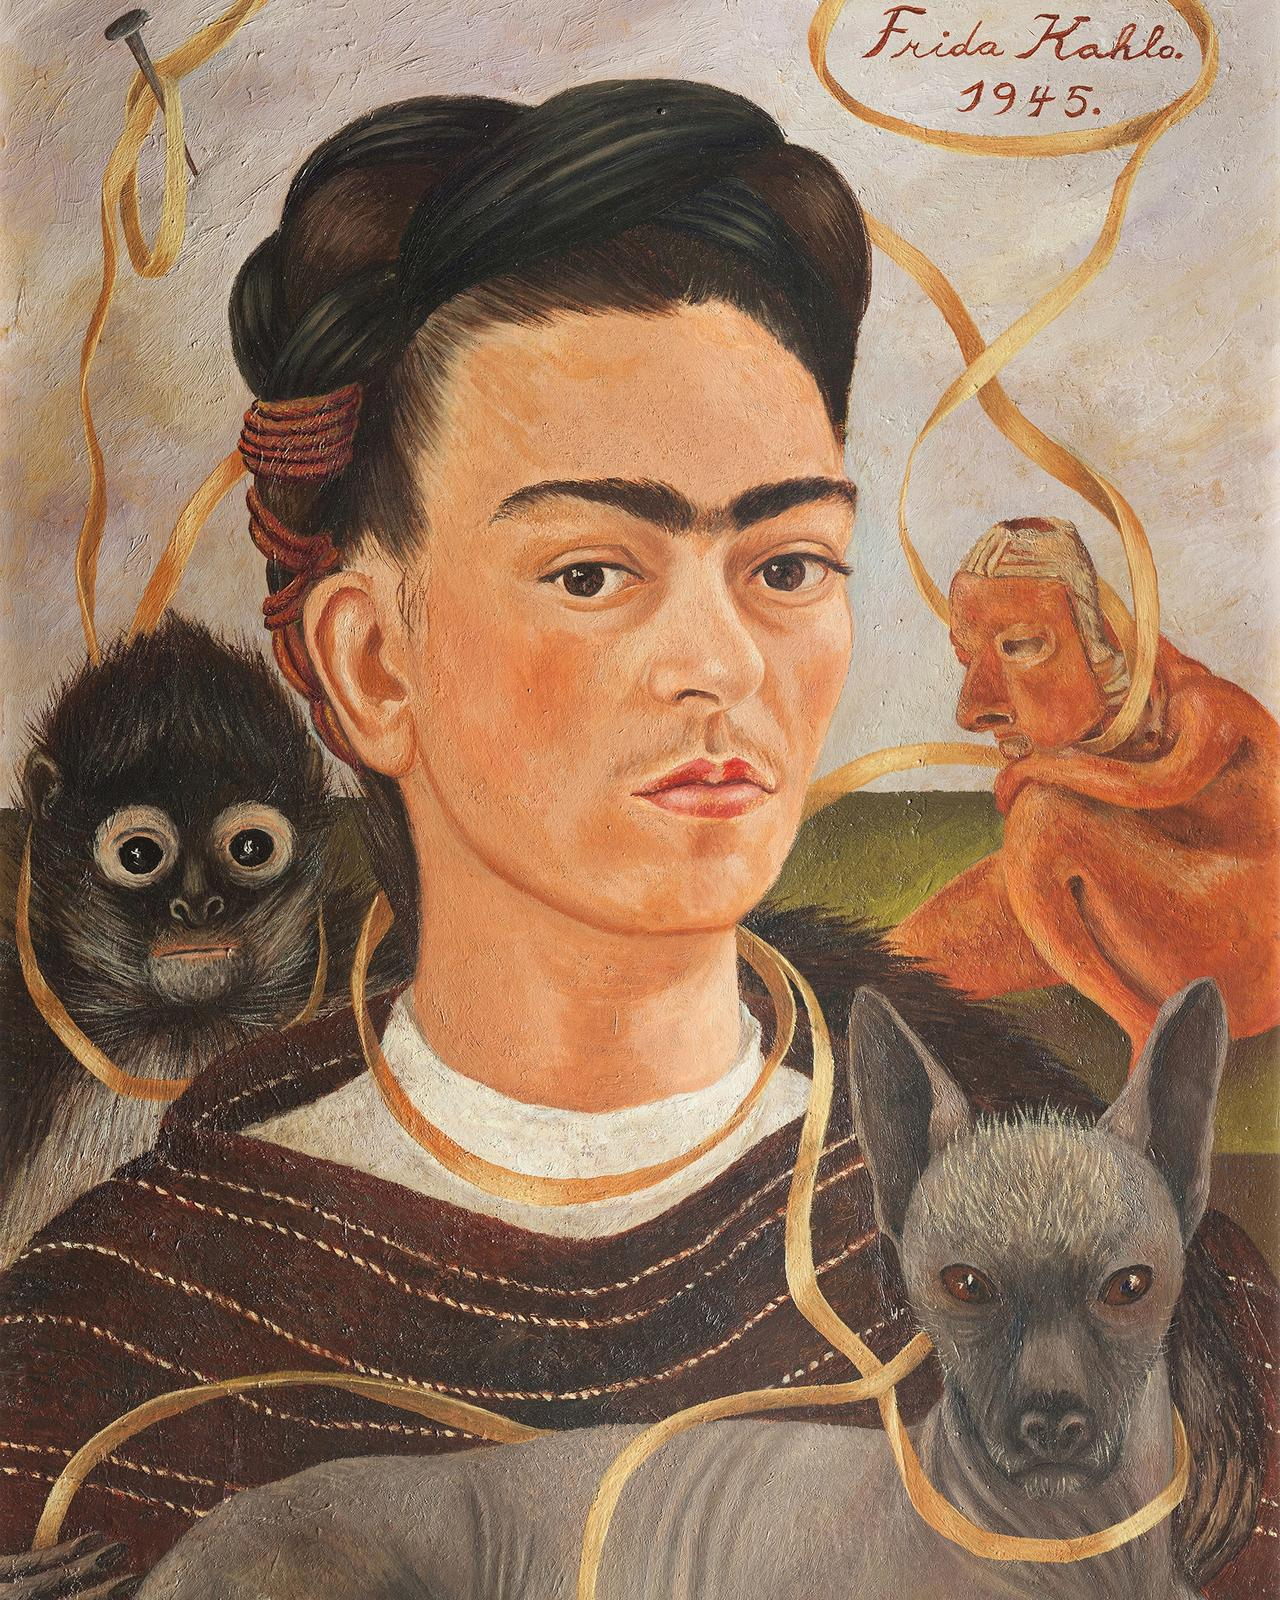 Frida Kahlo, Self-Portrait with Small Monkey (1945) Collection Museo Dolores Olmedo, Xochimilco, Mexico © 2020 Banco de México Diego Rivera Frida Kahlo Museums Trust, Mexico, D.F. / Artists Rights Society (ARS), New York